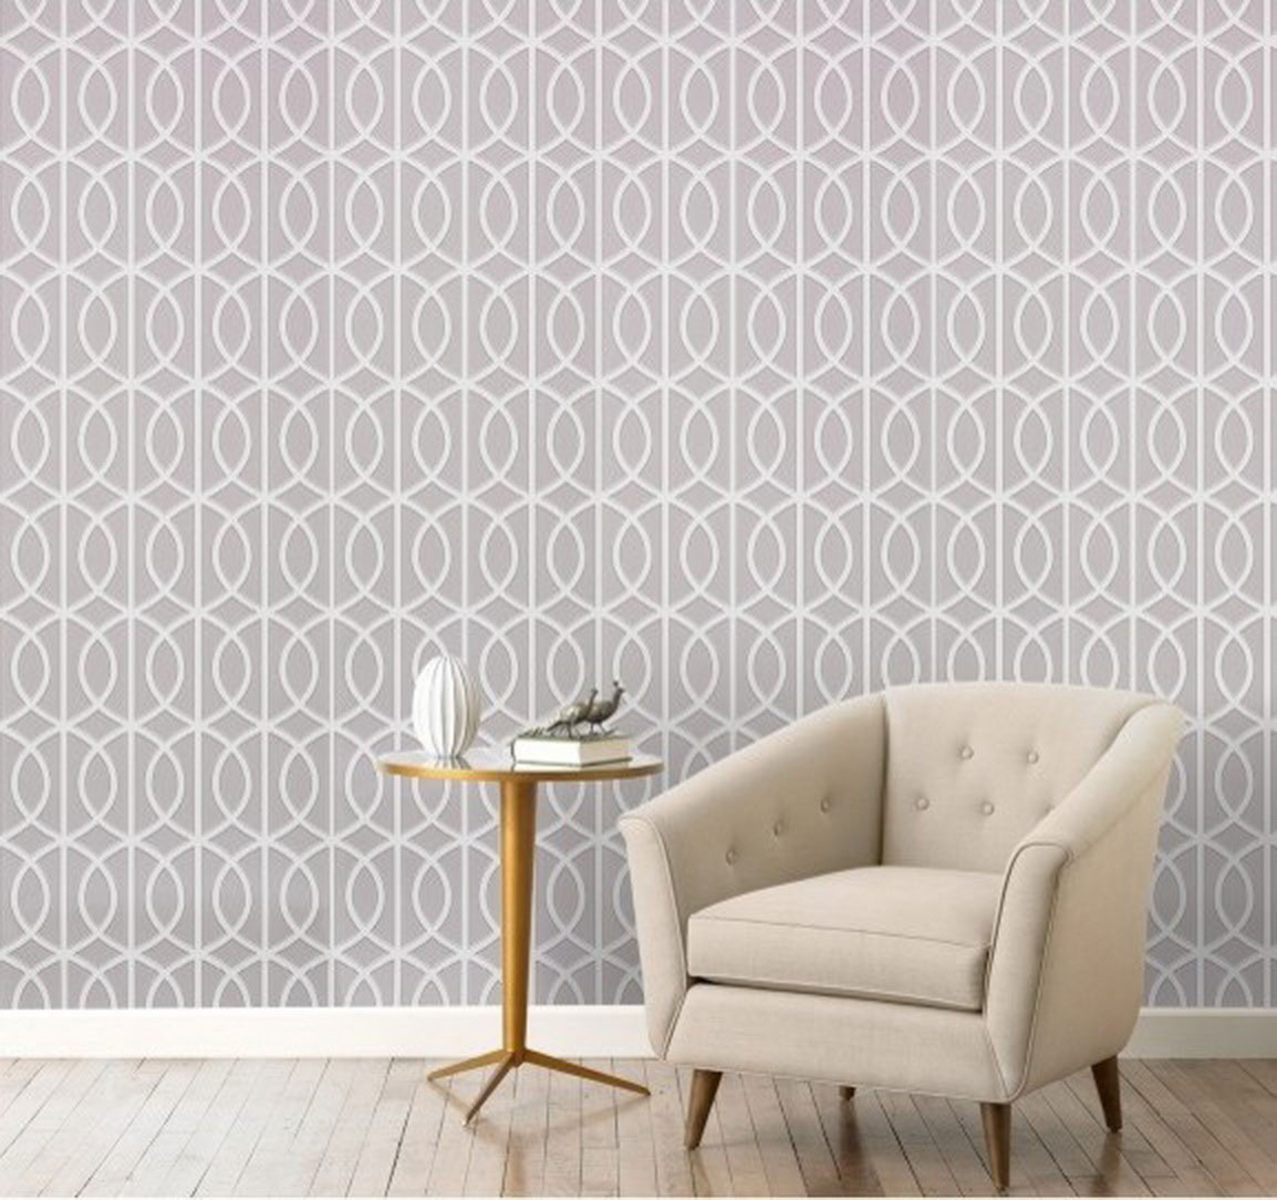 wallpaper dealers in chennai|wall mural|wallpaper manufacturer